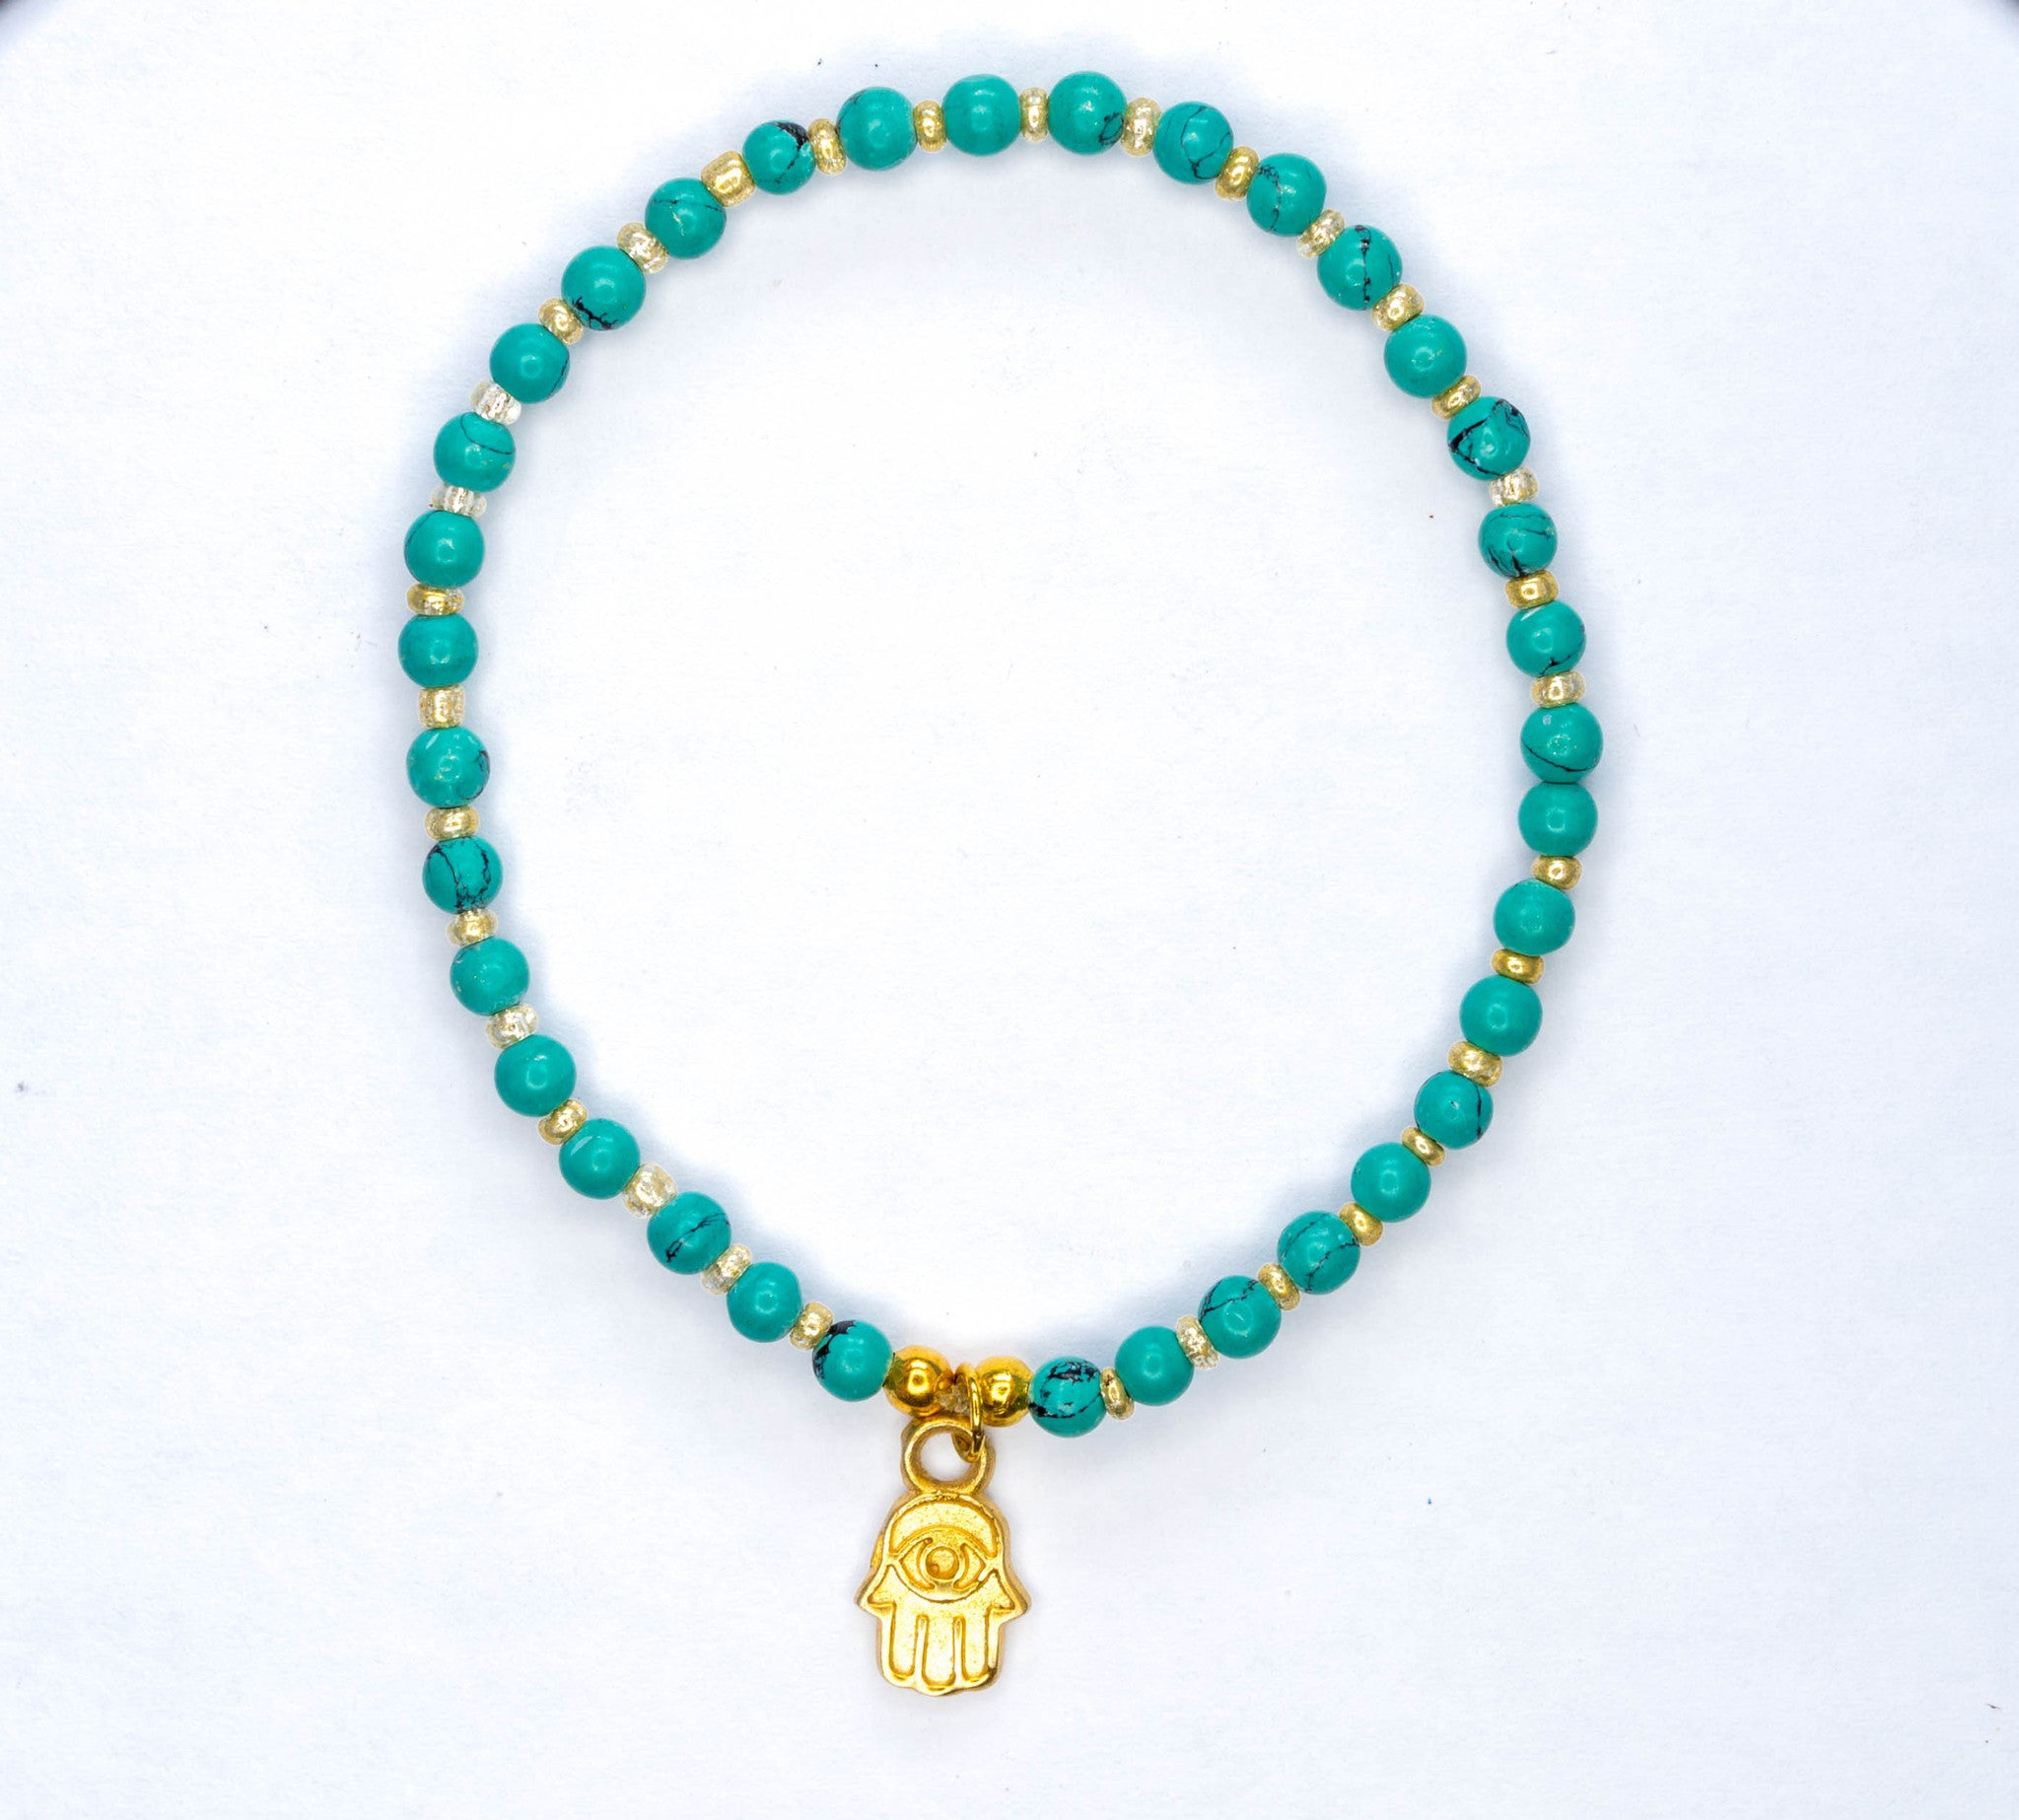 hamsa onyx to enlarge bracelet turquoise integrity click spirit truth connexions